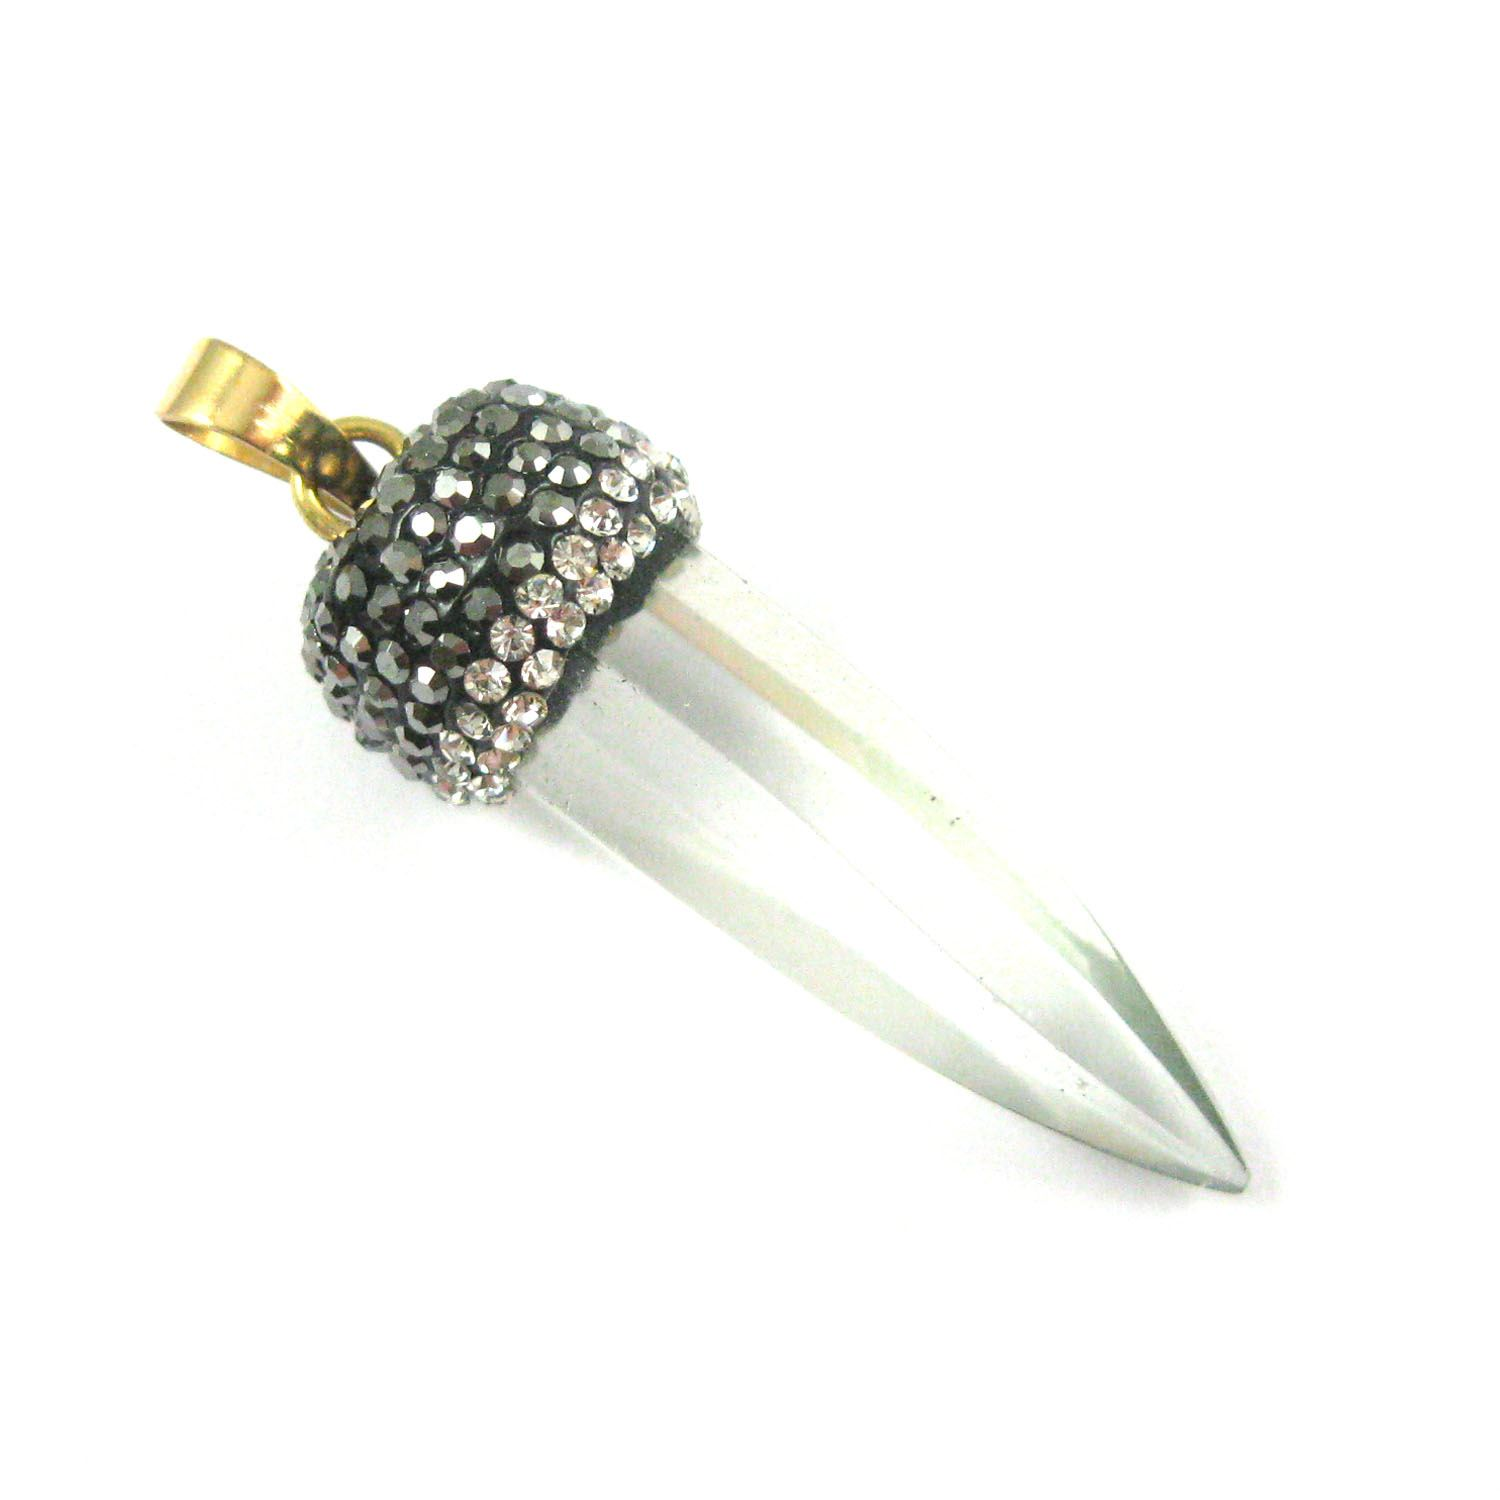 Natural Crystal Quartz Pave Pendant, Spike Pendulum Necklace Zircon Pandant - 53mm